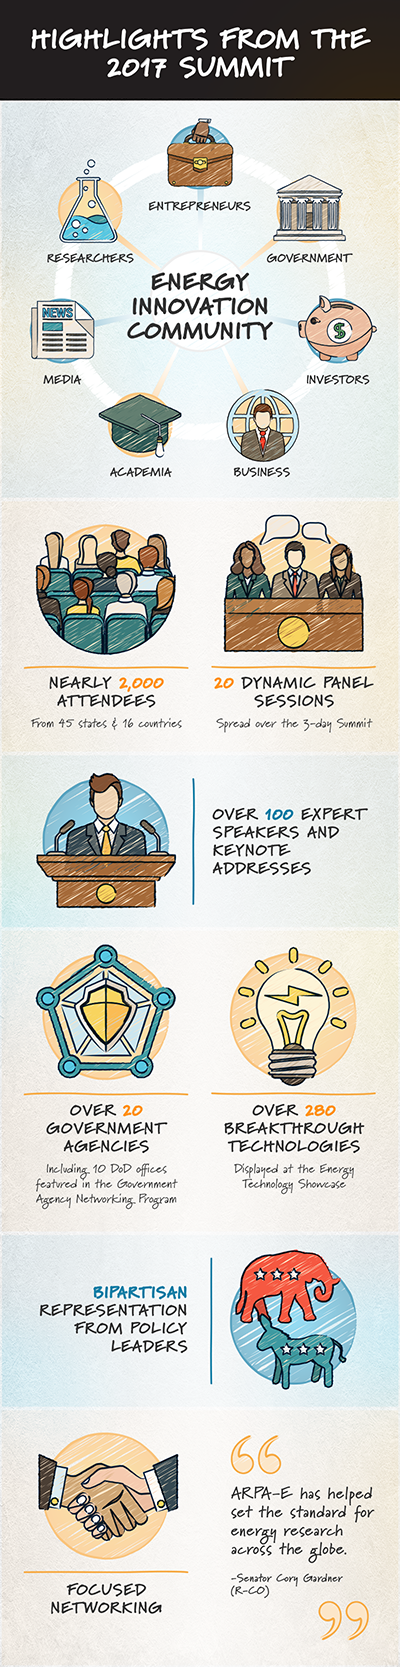 2017 Summit Infographic